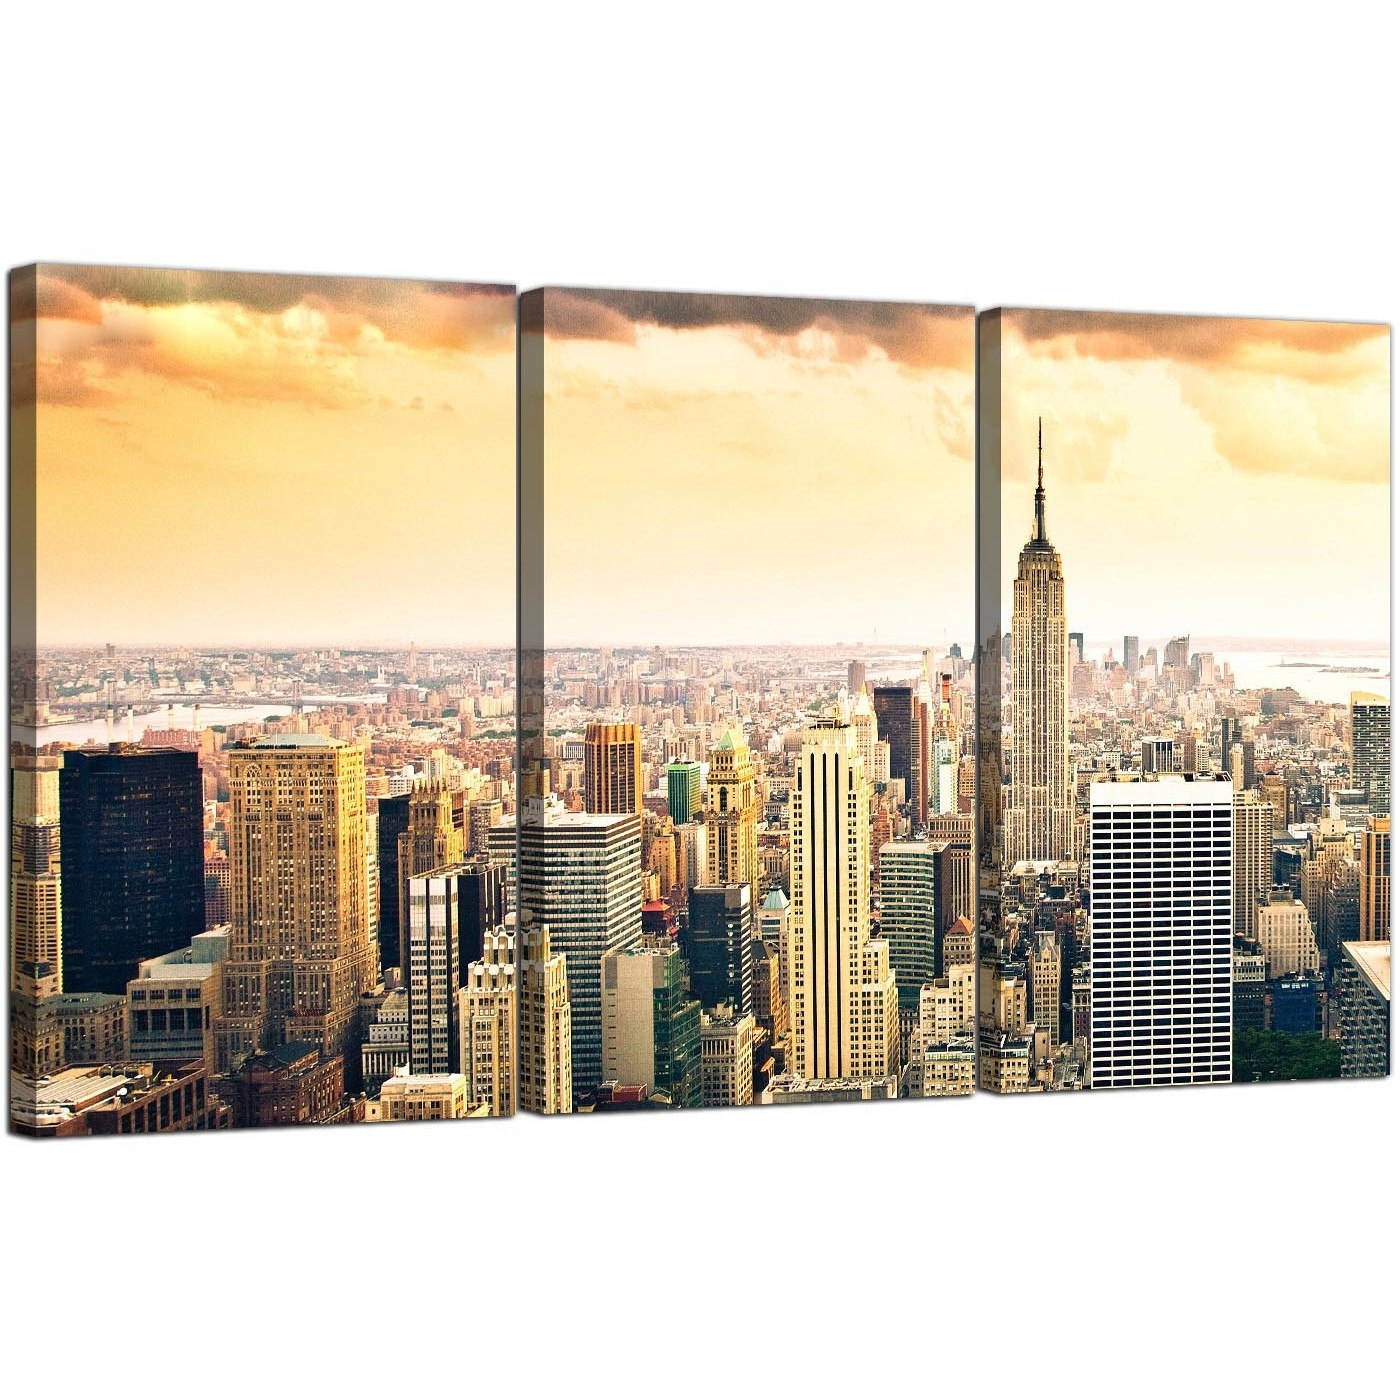 Explore Gallery of Canvas Wall Art Of New York City (Showing 7 of 15 ...